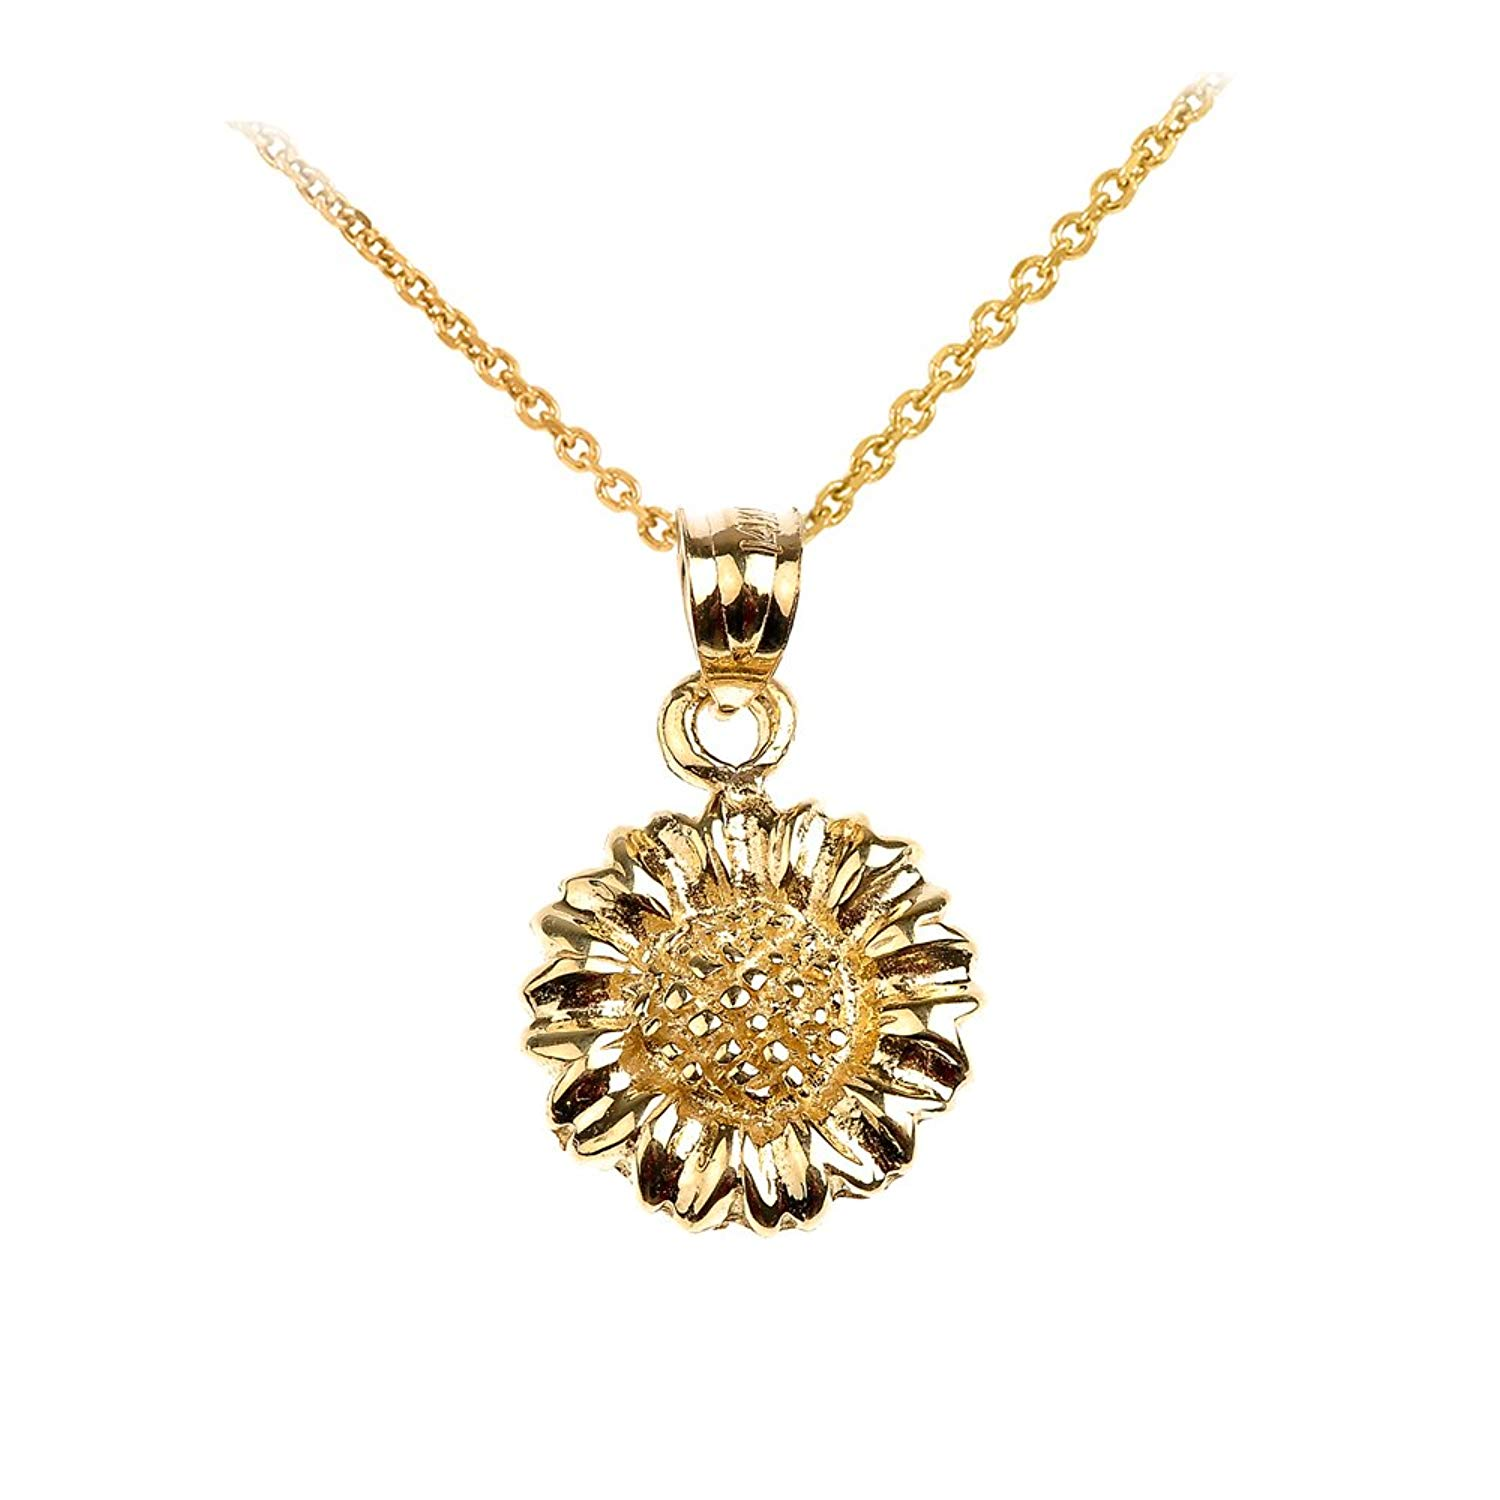 Charms for Bracelets and Necklaces 10k Yellow Gold Sunflower Charm With Lobster Claw Clasp